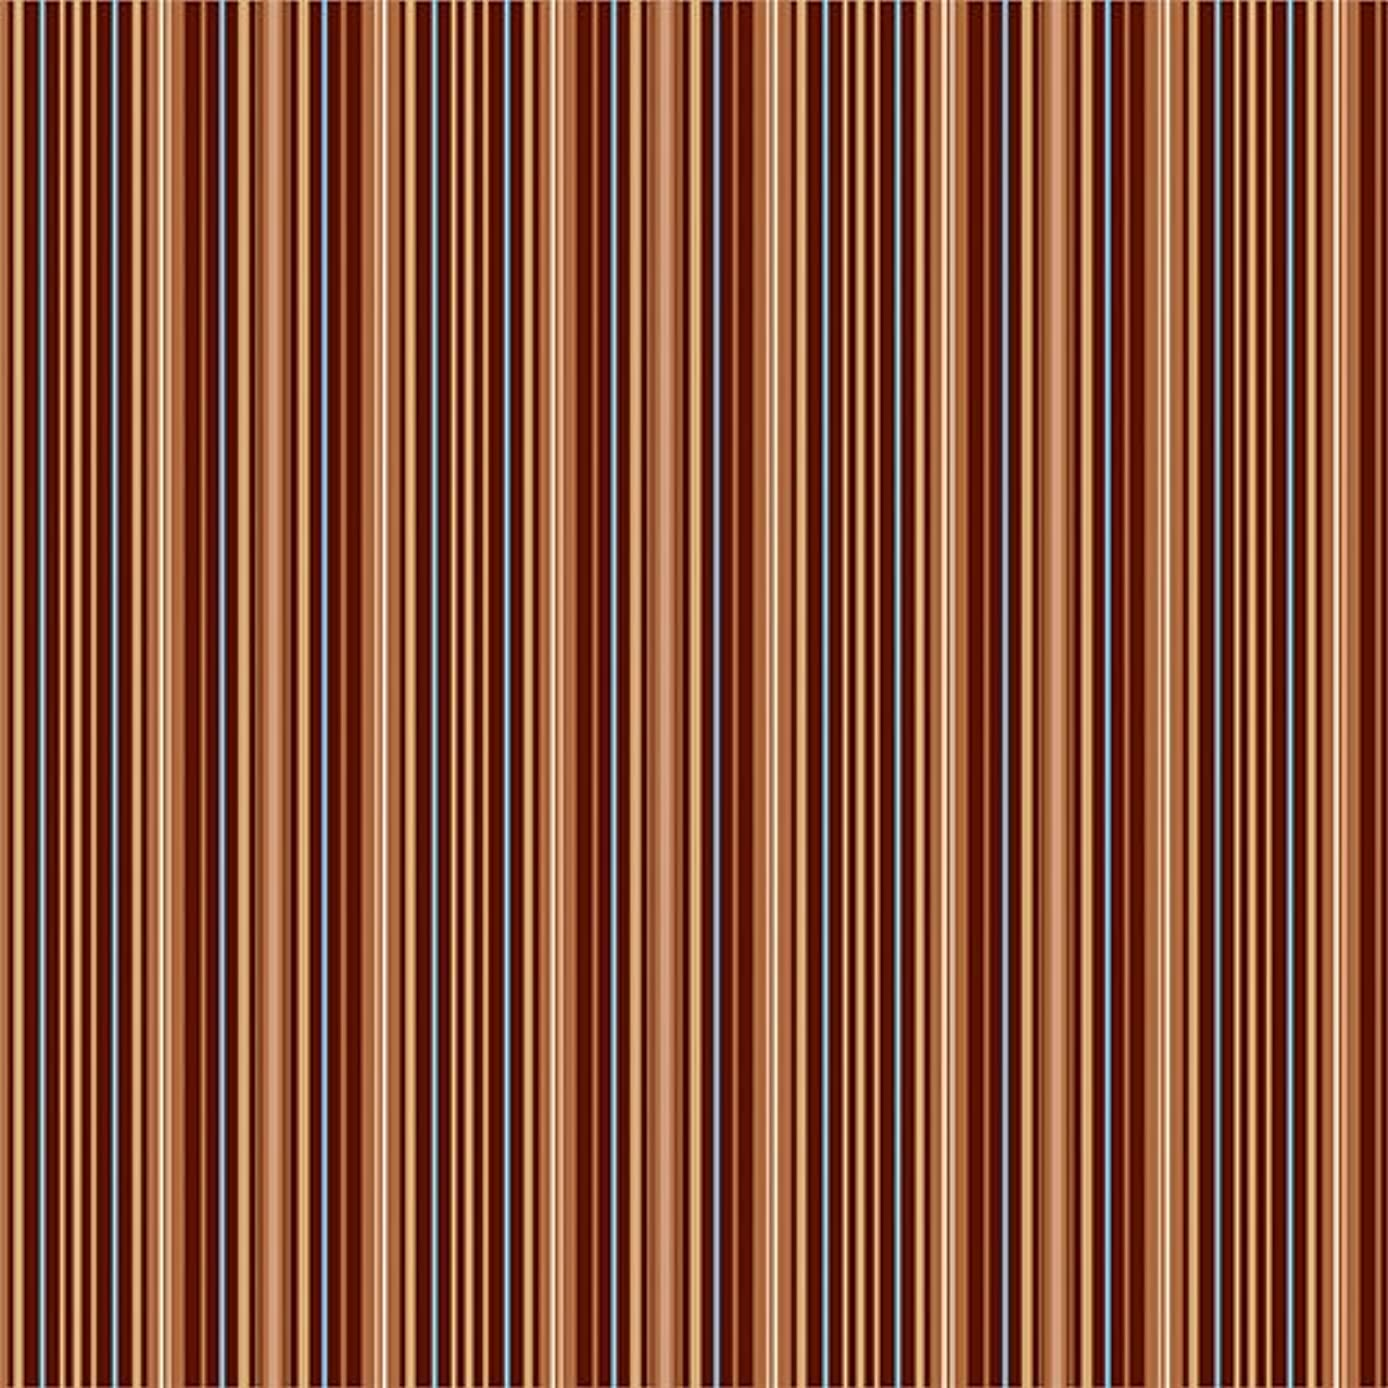 American Crafts 25 12 x 12 Inch Brown Fine Stripe Print Paper Pack by Die Cuts with a View Piece